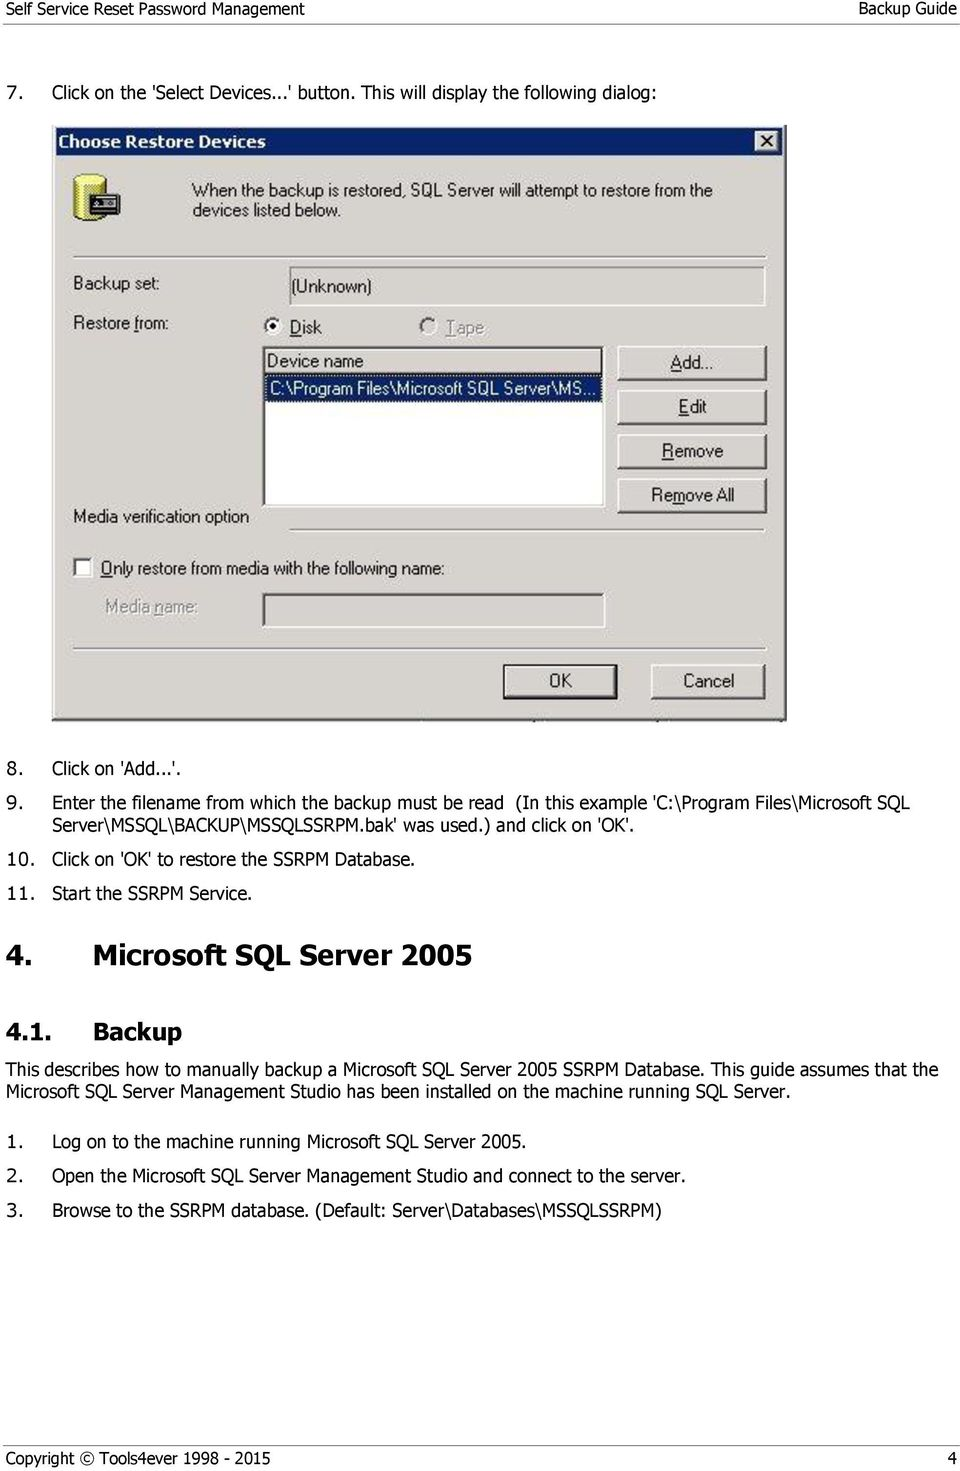 Click on 'OK' to restore the SSRPM Database. 11. Start the SSRPM Service. 4. Microsoft SQL Server 2005 4.1. Backup This describes how to manually backup a Microsoft SQL Server 2005 SSRPM Database.